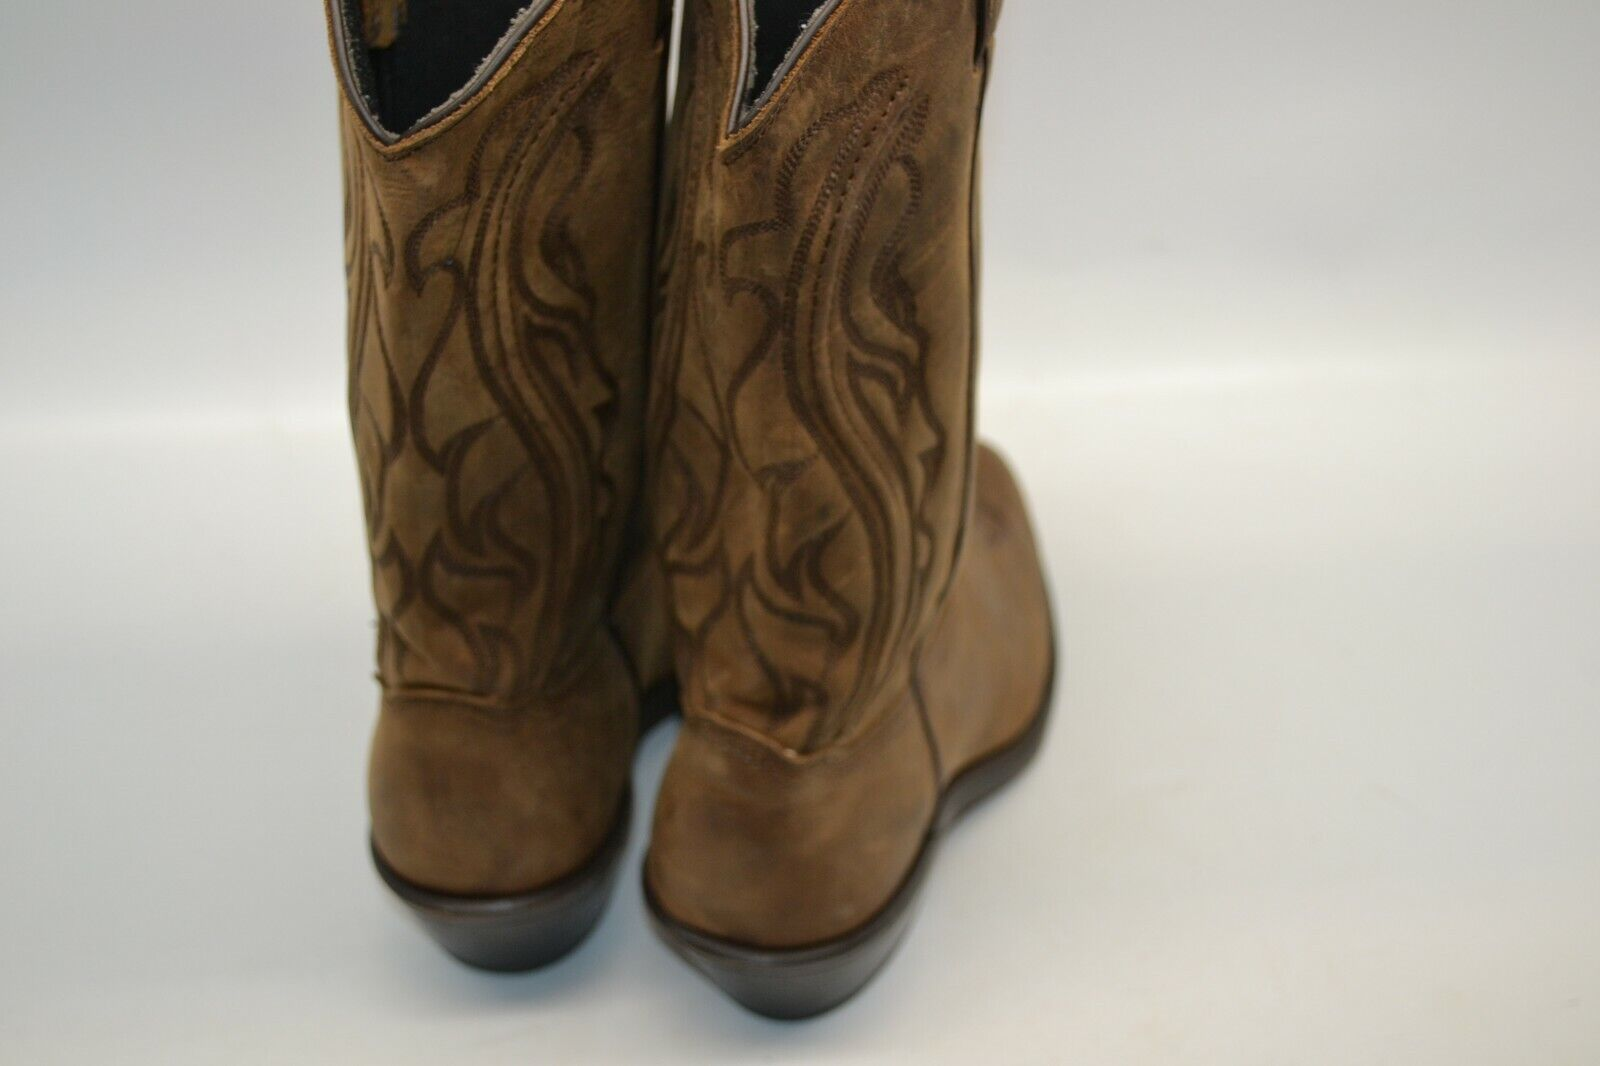 Abilene SAGE Women's Women's Women's Western Cowgirl BROWN SZ 9 M Boot ROUND Toe 3551 USA MADE fb1e5a